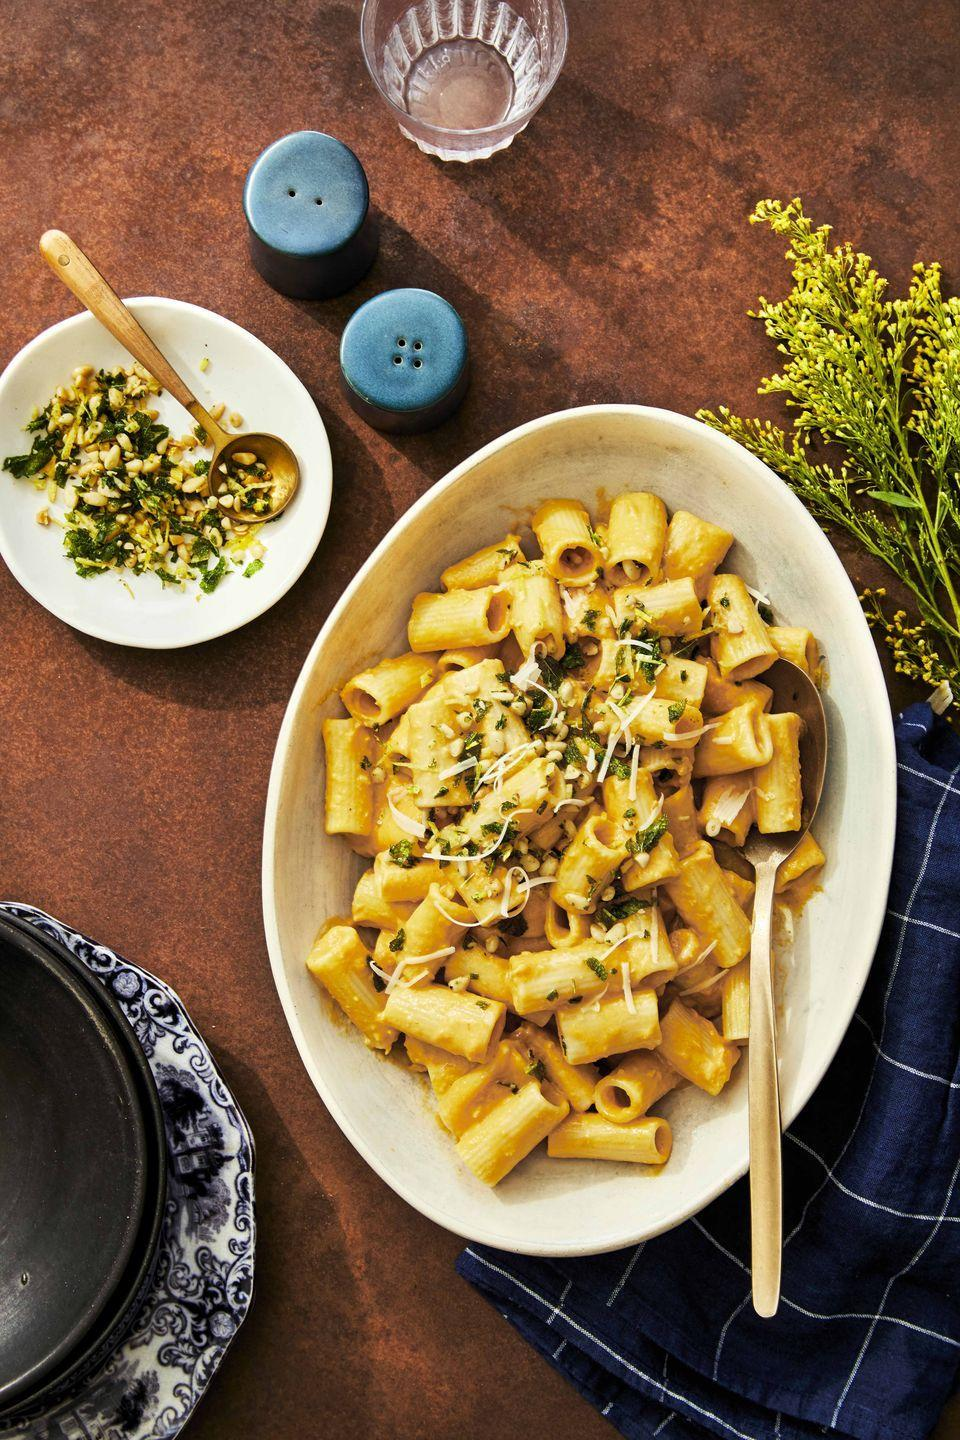 "<p>A can of pumpkin, some pine nuts, and a few herbs are all you need to elevate this dish to the ethereal.</p><p><strong><a href=""https://www.countryliving.com/food-drinks/a33944132/creamy-pumpkin-pasta-with-pine-nut-gremolata/"" rel=""nofollow noopener"" target=""_blank"" data-ylk=""slk:Get the recipe"" class=""link rapid-noclick-resp"">Get the recipe</a>.</strong></p><p><strong><a class=""link rapid-noclick-resp"" href=""https://www.amazon.com/Cuisinart-733-30H-Classic-Stainless-2-Quart/dp/B00008CM6B/?tag=syn-yahoo-20&ascsubtag=%5Bartid%7C10050.g.34100795%5Bsrc%7Cyahoo-us"" rel=""nofollow noopener"" target=""_blank"" data-ylk=""slk:SHOP SAUTÉ PANS"">SHOP SAUTÉ PANS</a></strong></p>"